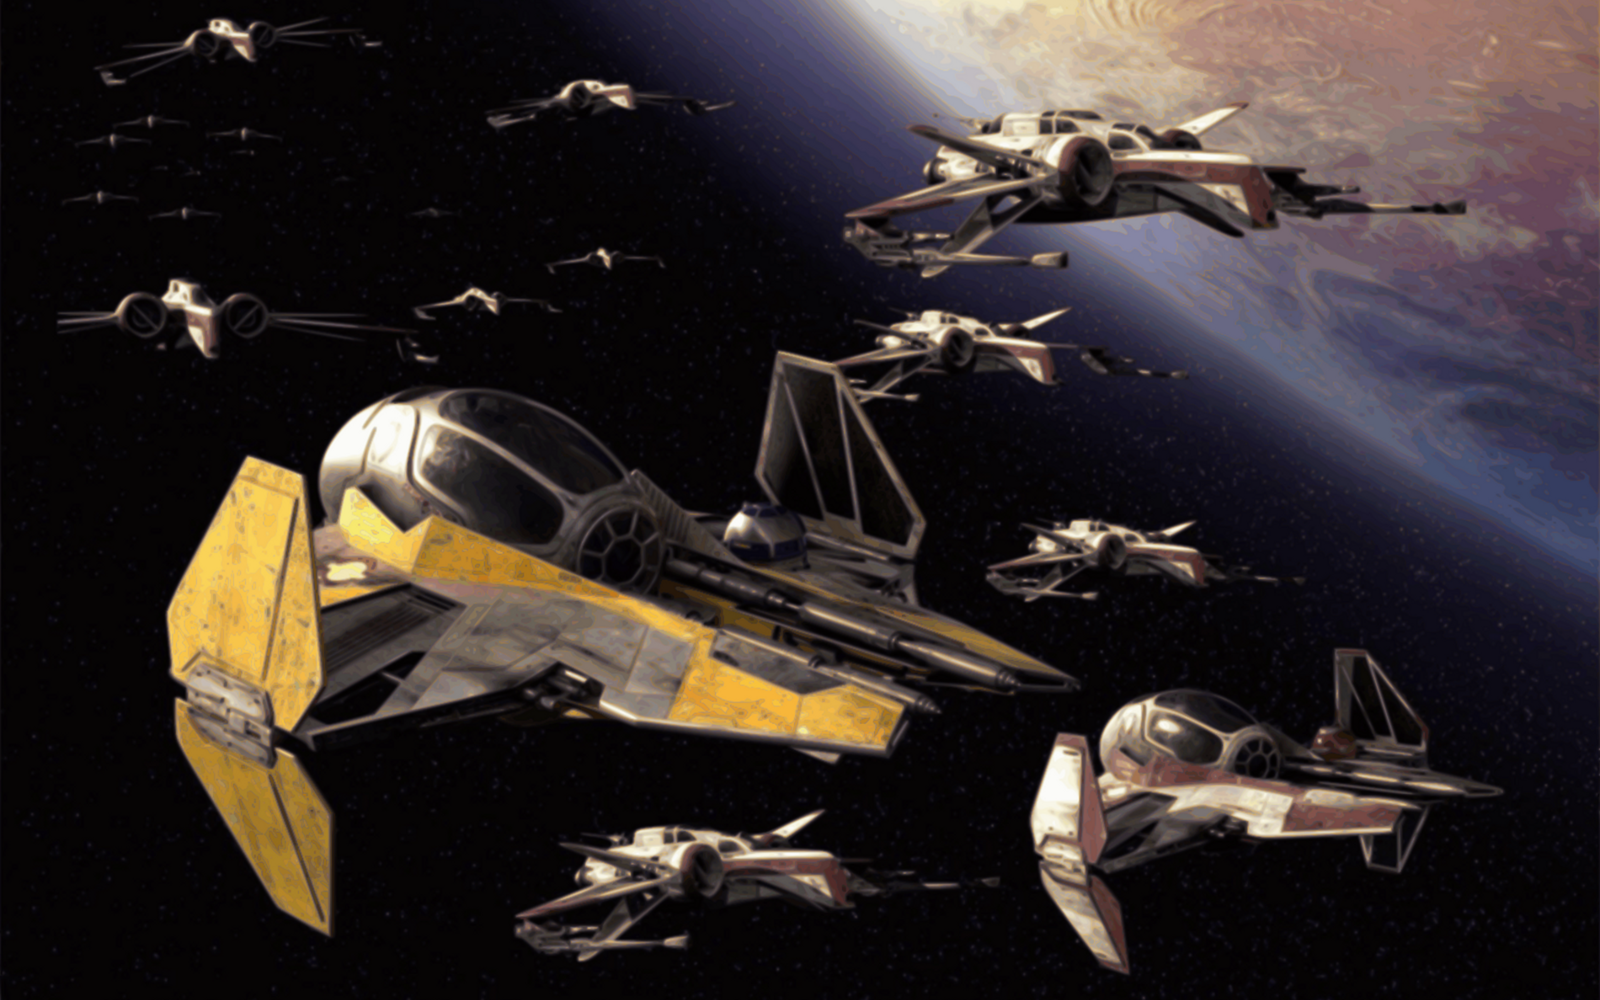 A Republic flight formation headed by Anakin (old melty face).